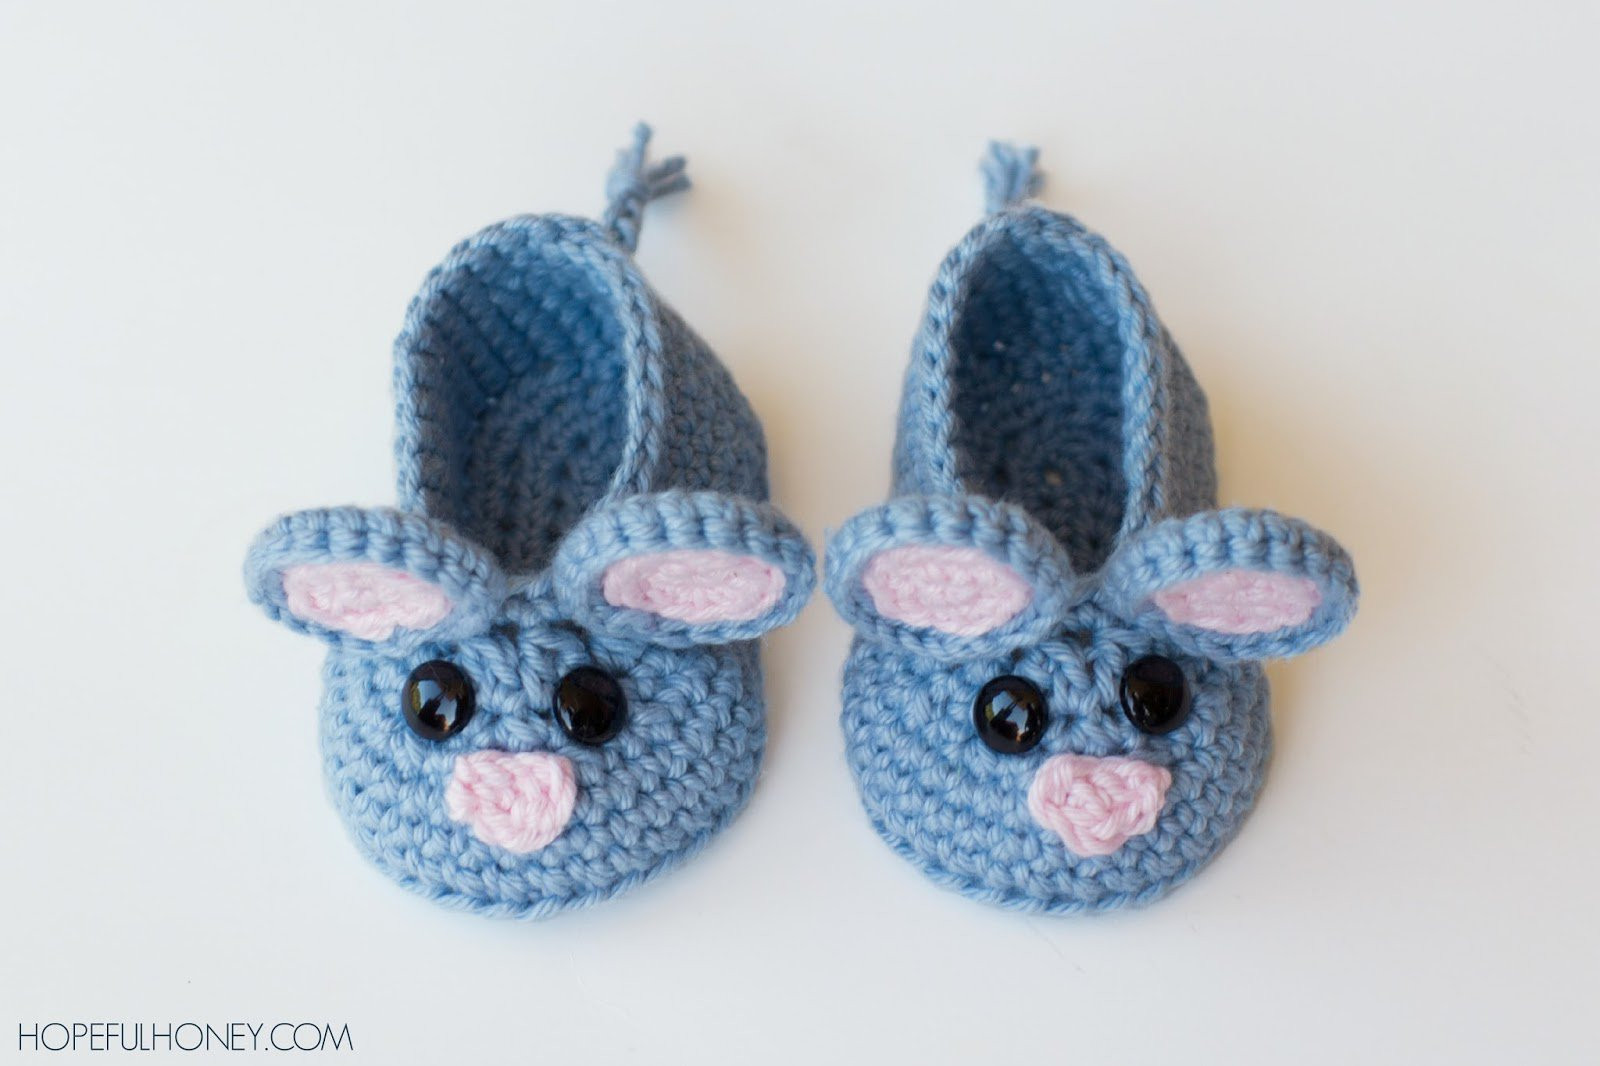 Crochet Baby Booties Unique Adorable Crochet Baby Animal Booties with Free Patterns Of Crochet Baby Booties Fresh Crochet Baby Mary Jane Booties Free Patterns